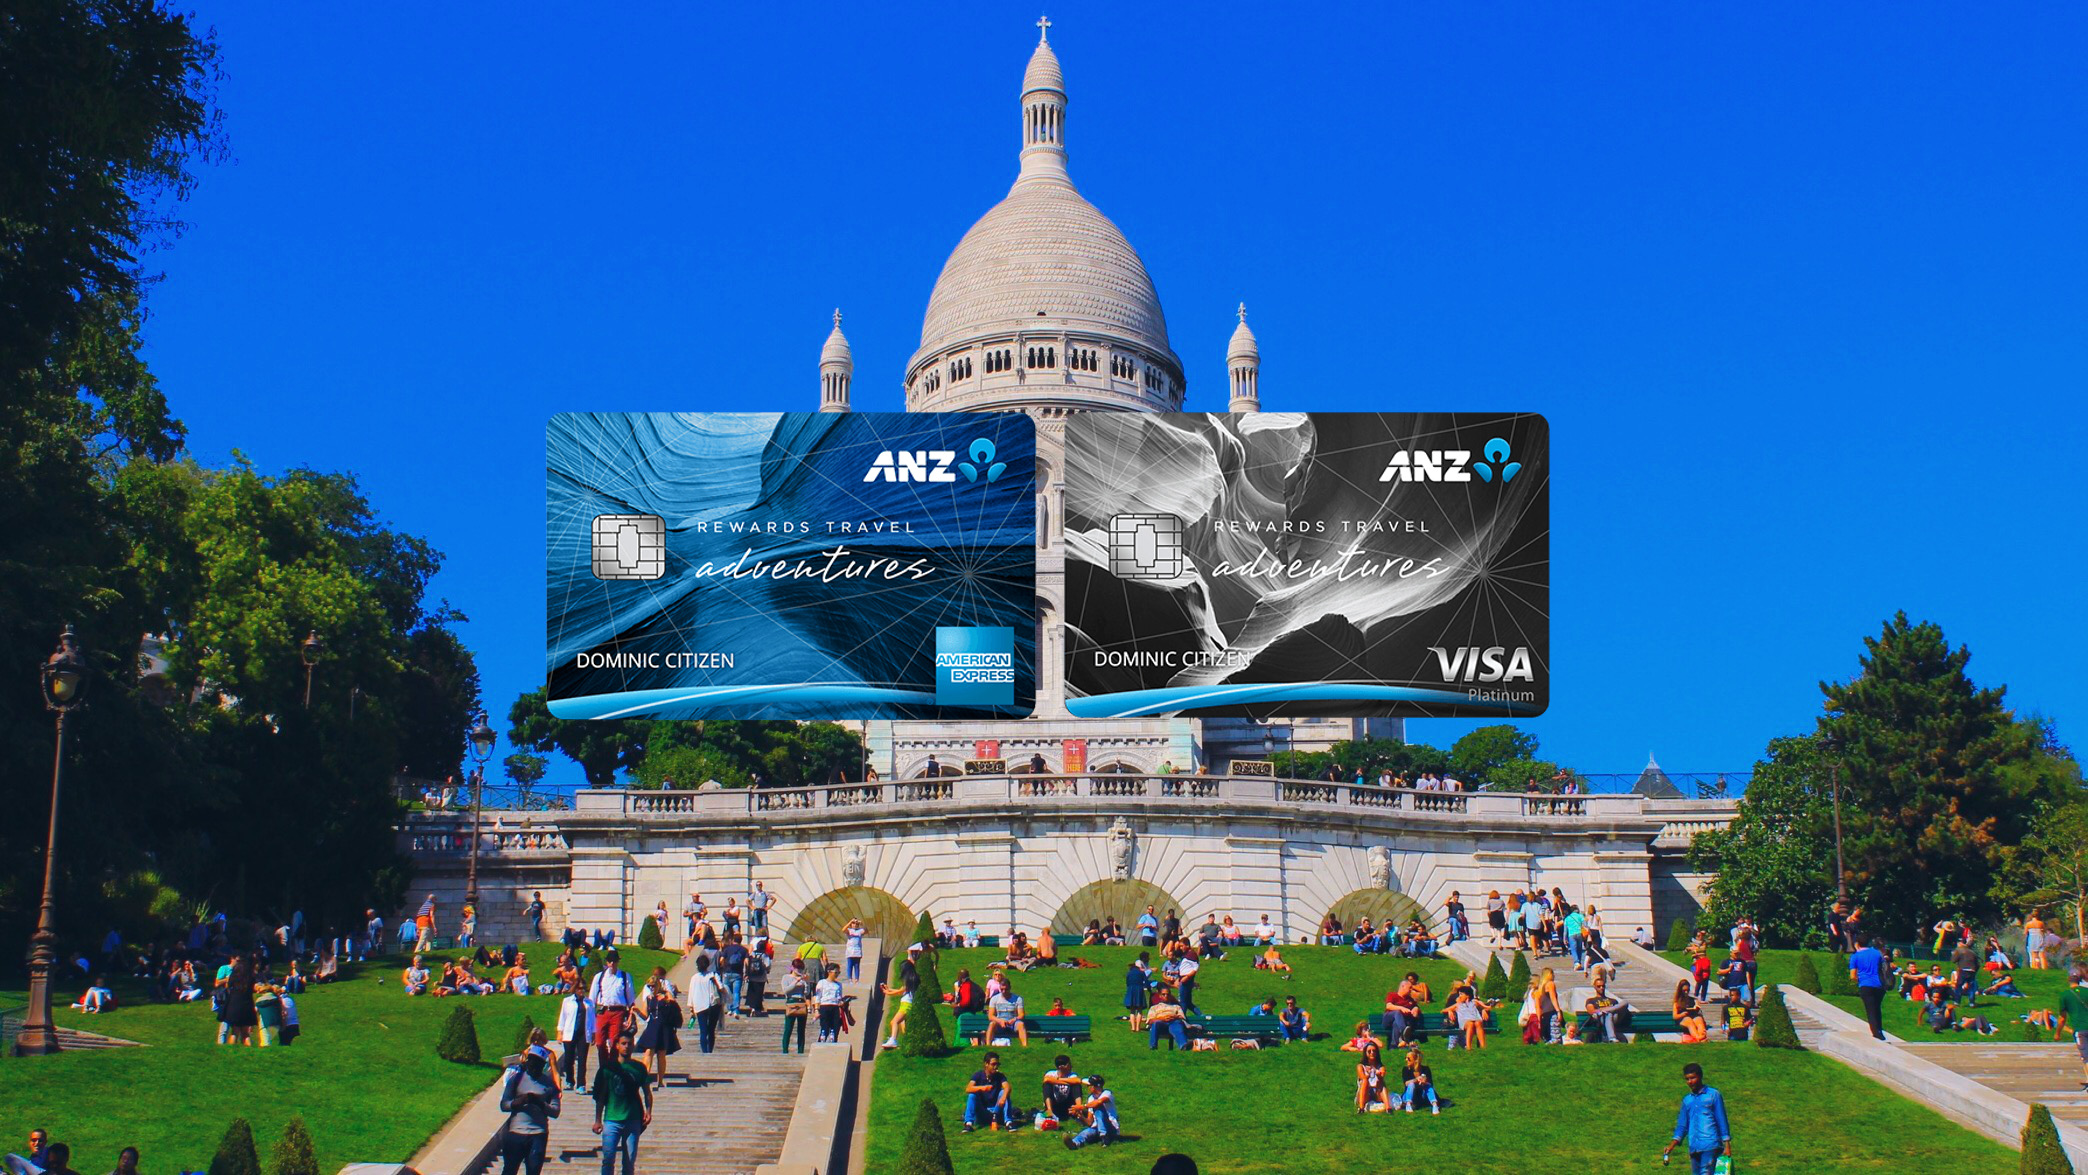 ANZ Rewards Travel Adventures